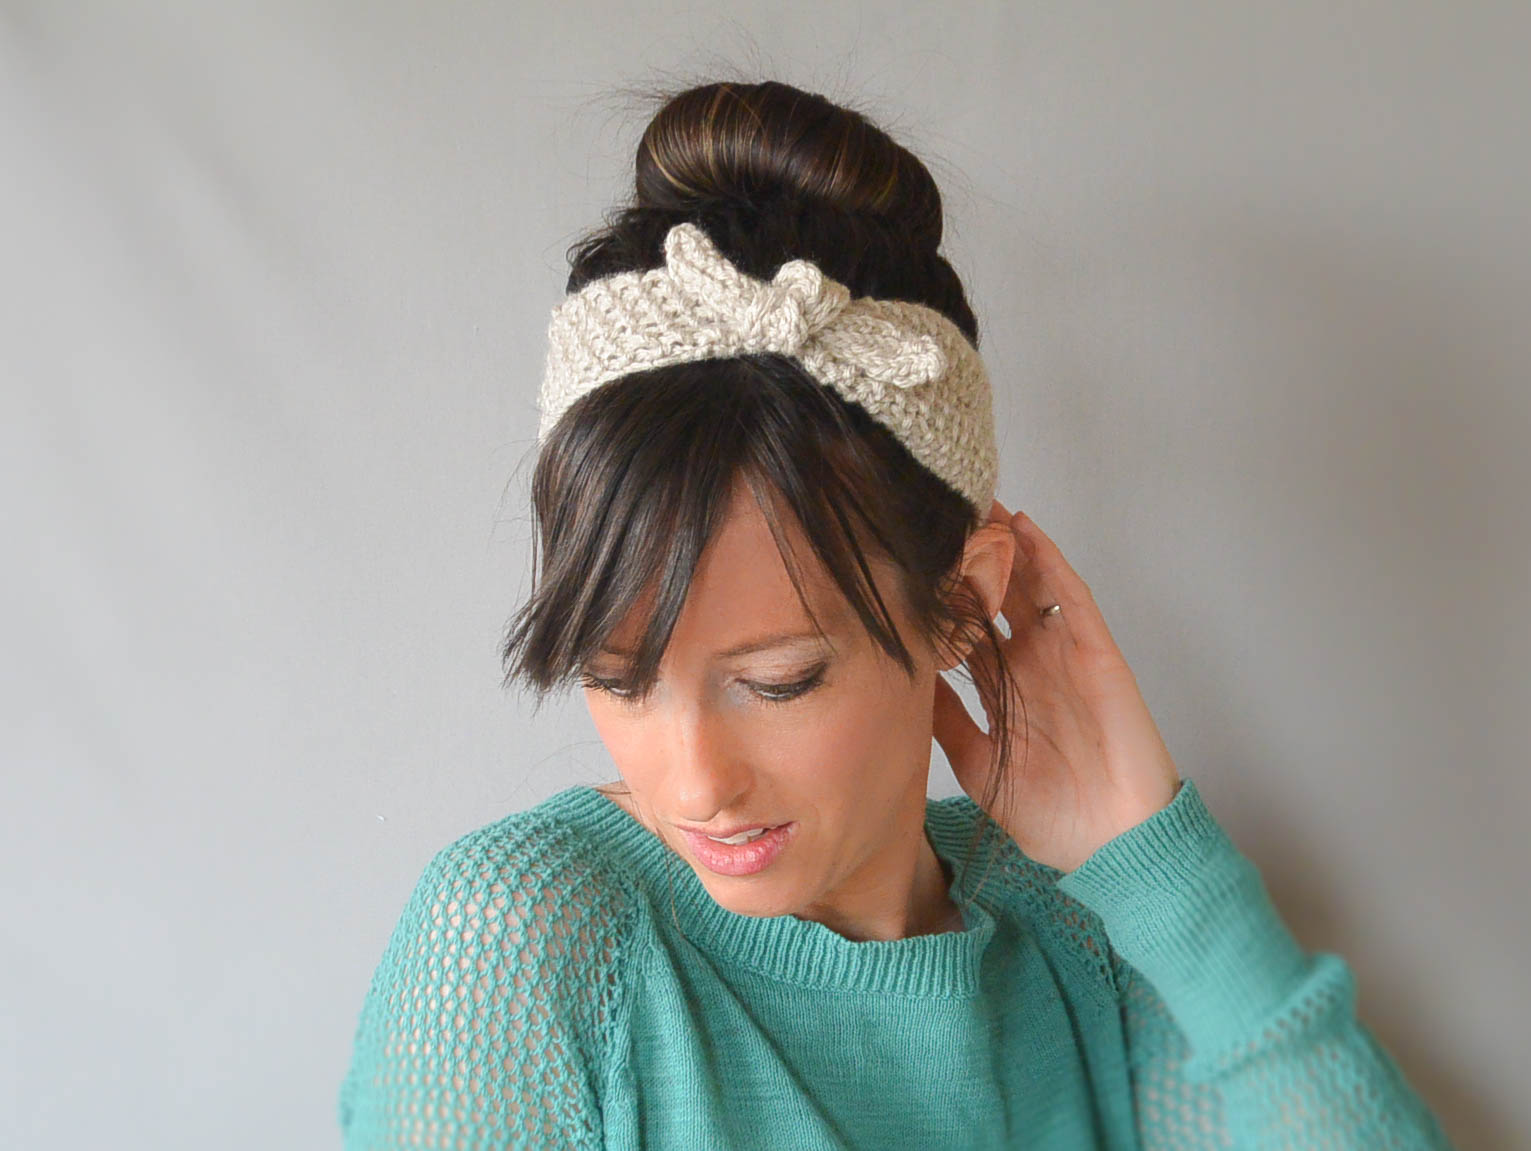 Knitting Headband Pattern Free : Free Knitting Patterns   Mama In A Stitch